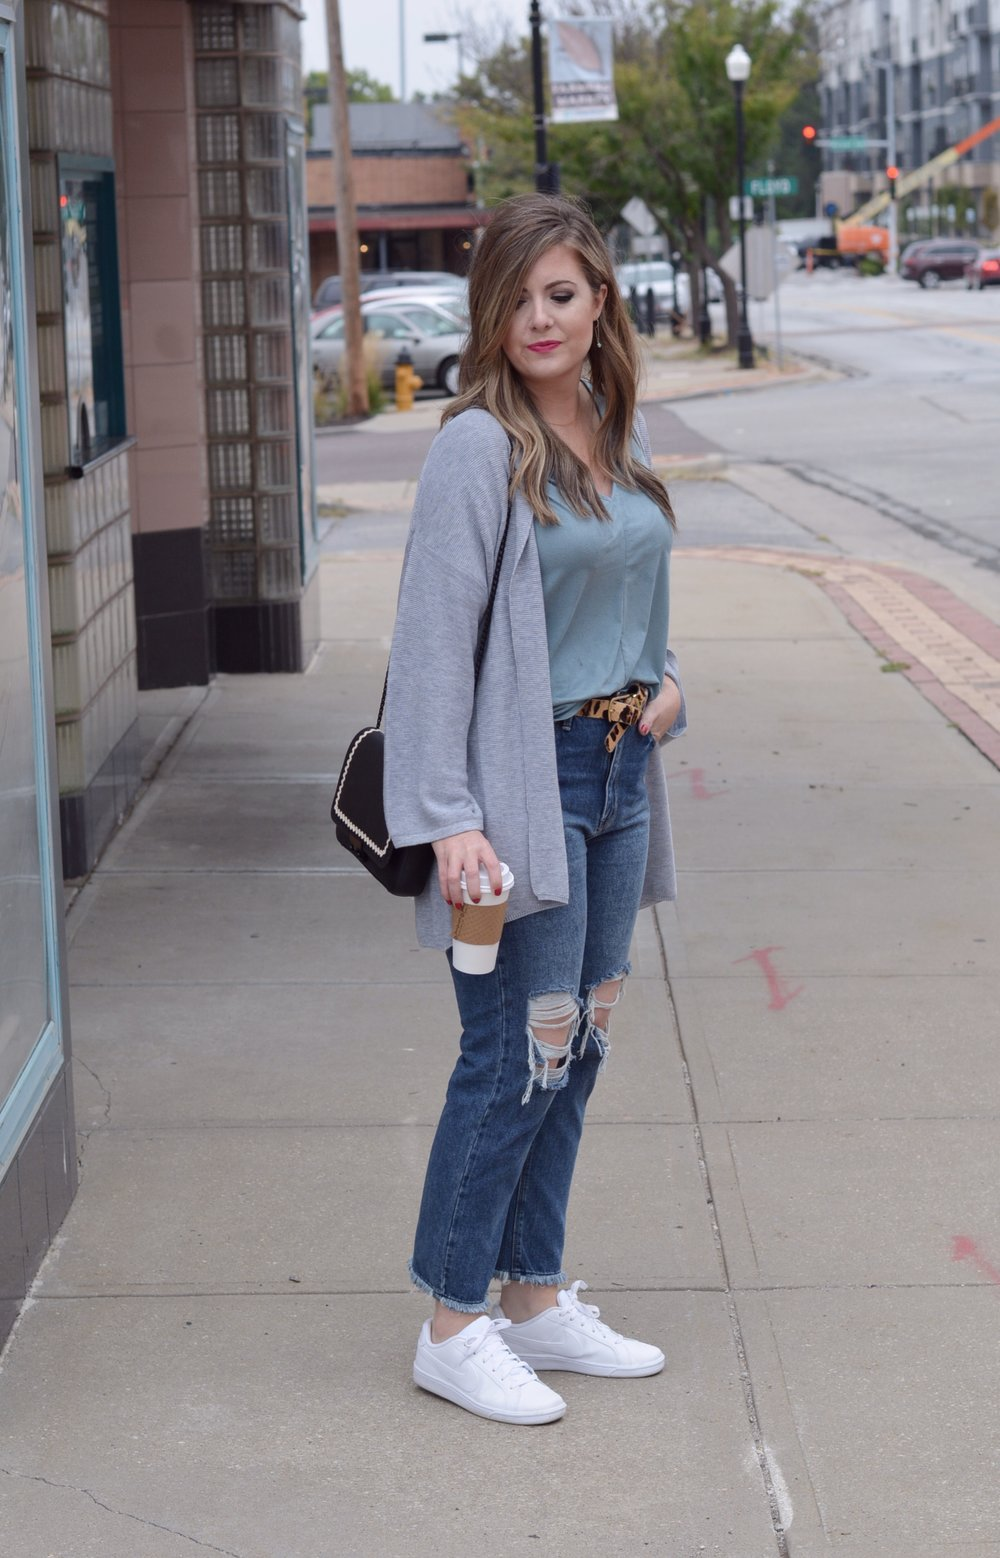 The best Mom jeans - casual style